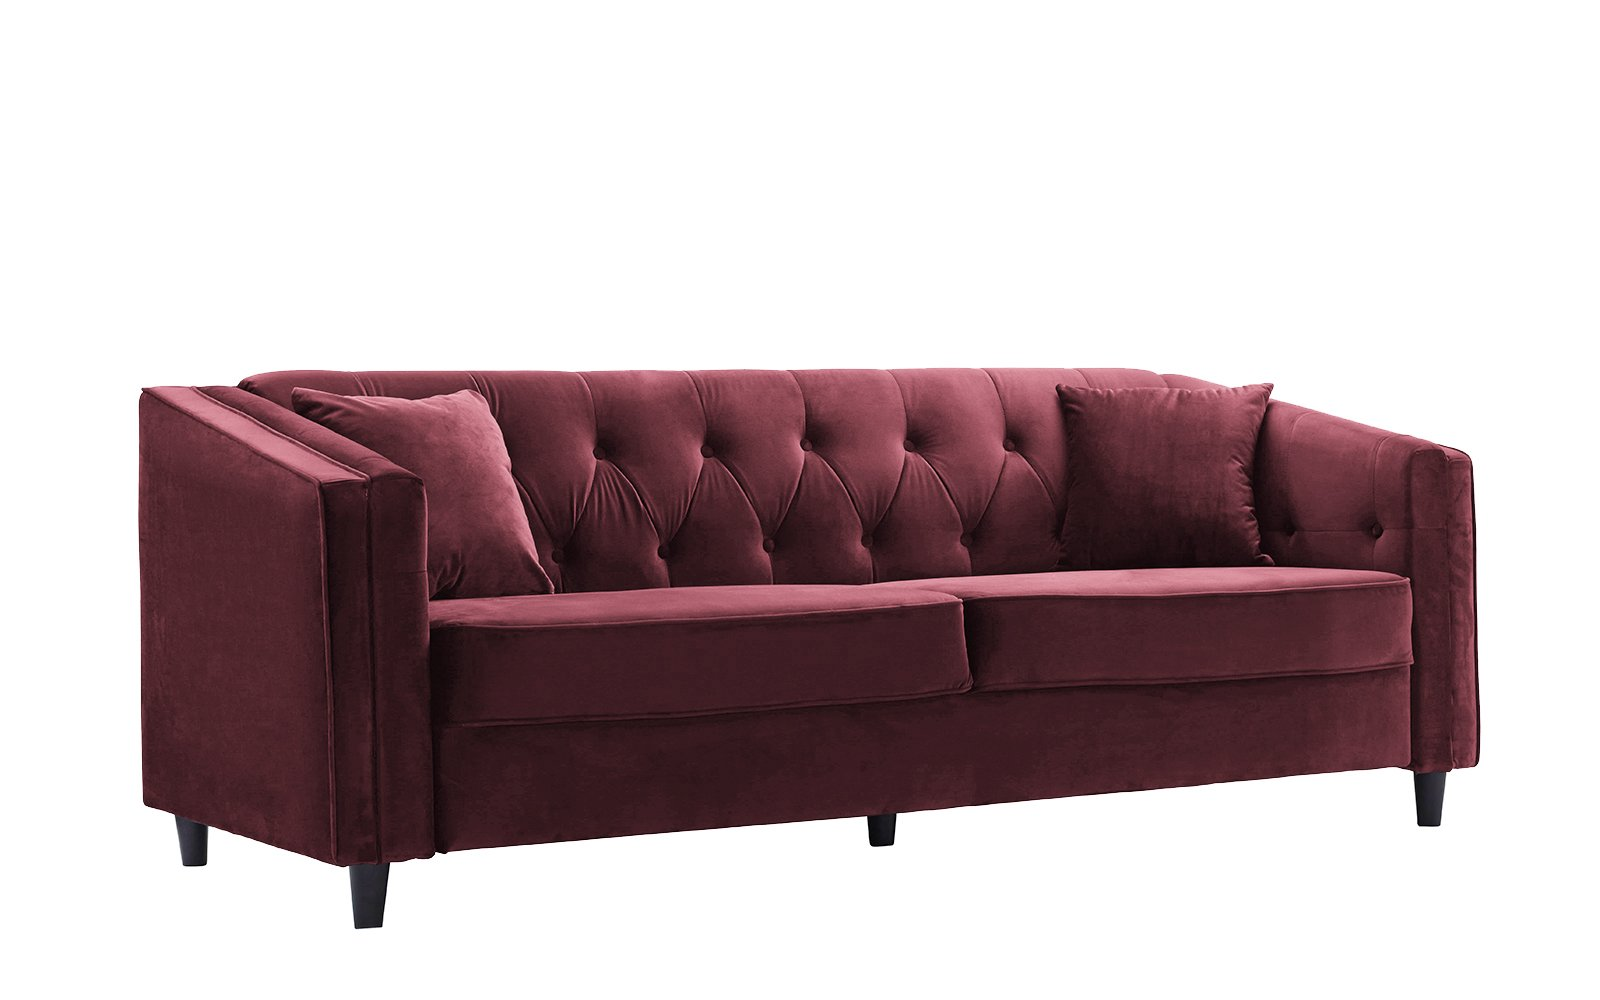 Get quotations · classic victorian style tufted velvet sofa living room couch with tufted buttons maroon